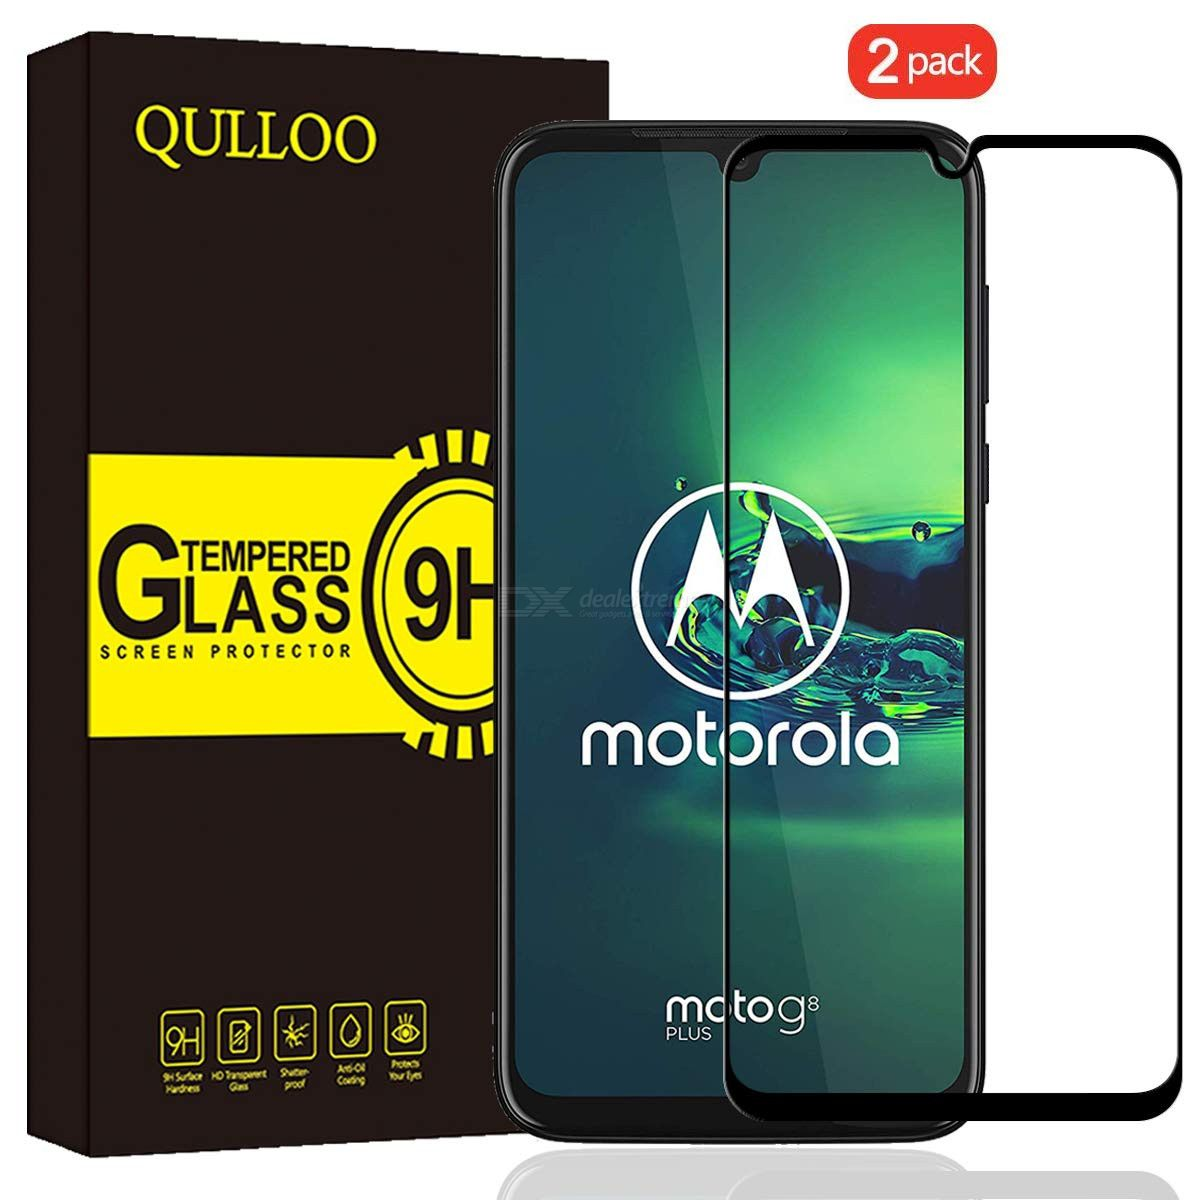 qulloo tempered glass screen protector 2.5d full coverage protective film for samsung galaxy m30s